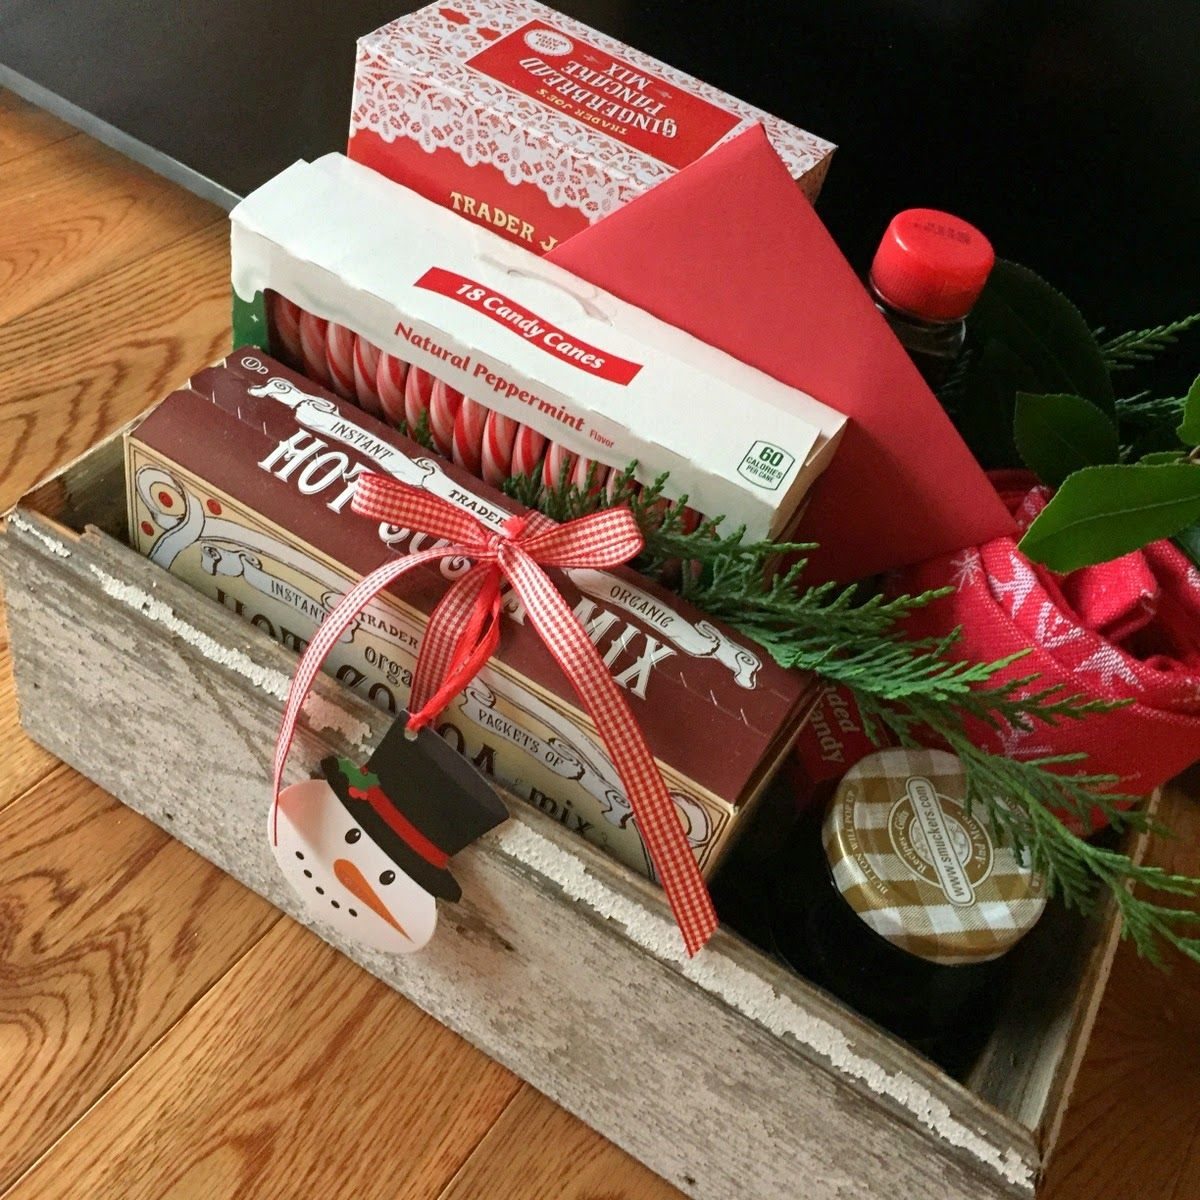 Christmas Gift Box from PLEASANT HOME.. Old barn wood box filled with yummy goodies!